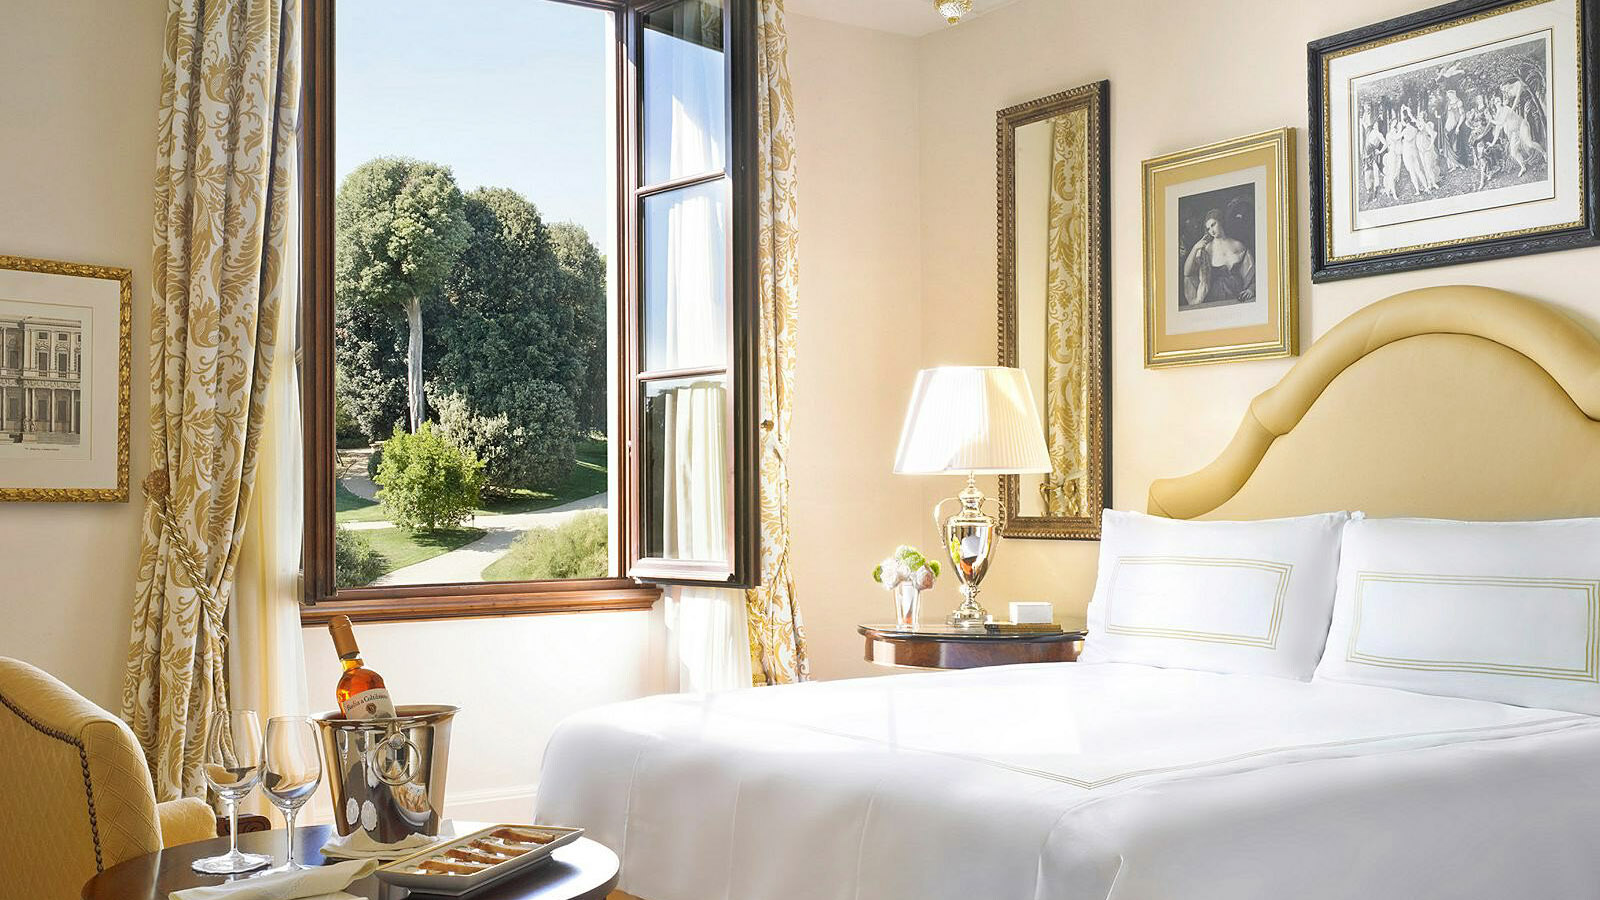 With This Offer From Four Seasons Hotel Firenze You Ll Receive A Complimentary Third Night